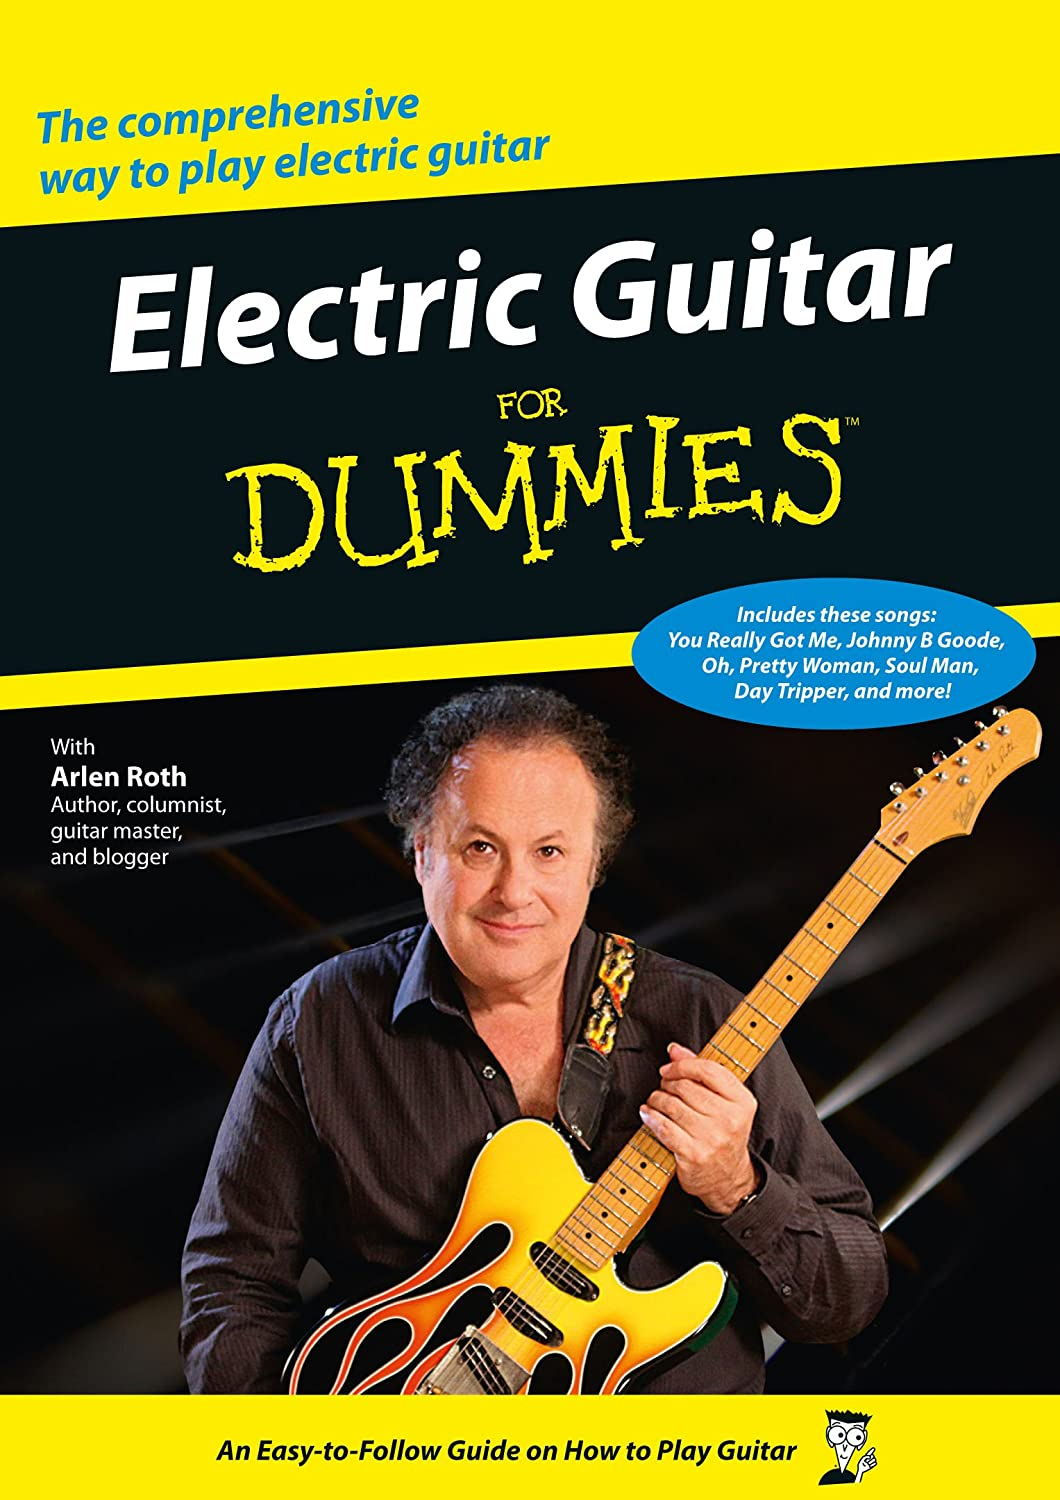 Electric Guitar for Dummies [DVD]: Amazon.co.uk: Arlen Roth, Dennis ...